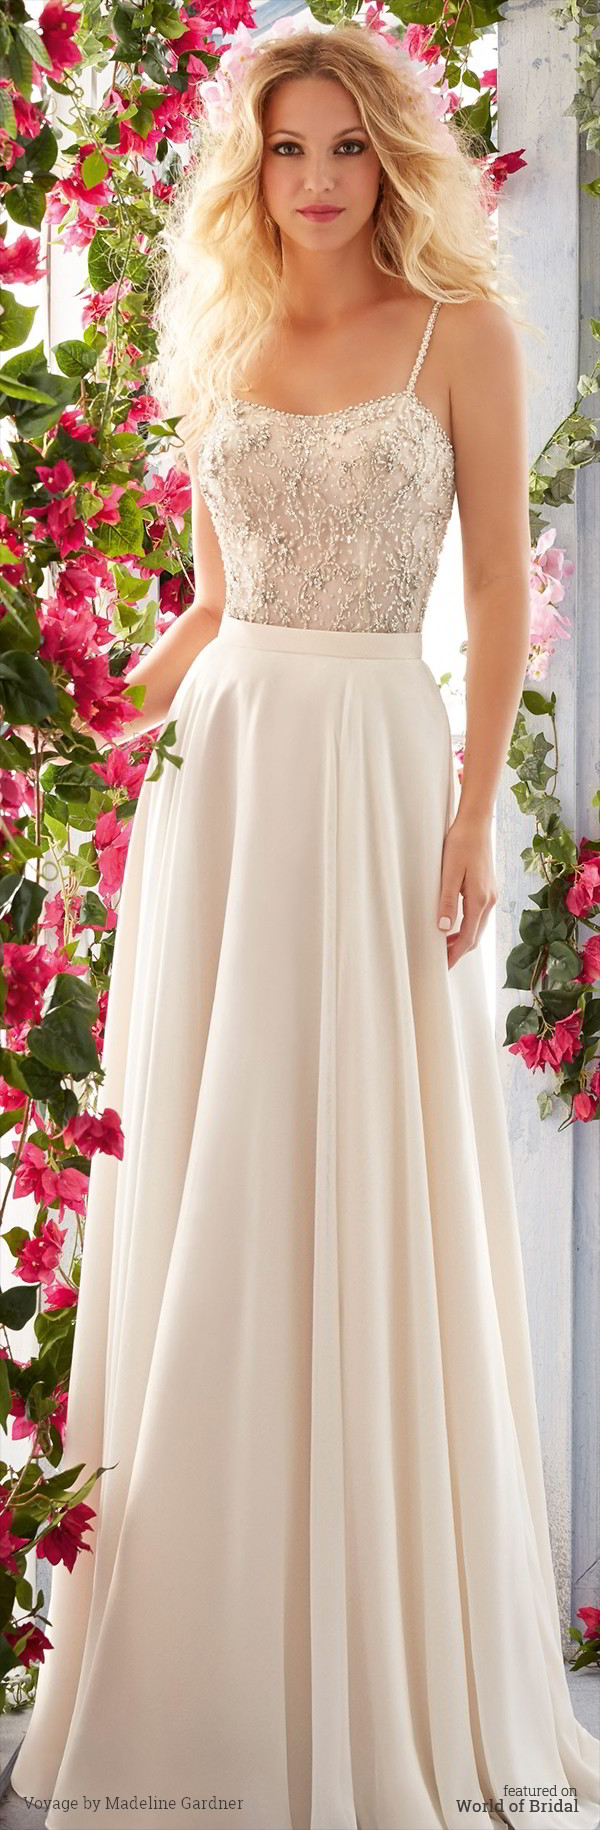 Full Flowing Soft Net Skirt Voyage By Madeline Gardner Spring 2016 Wedding Dress